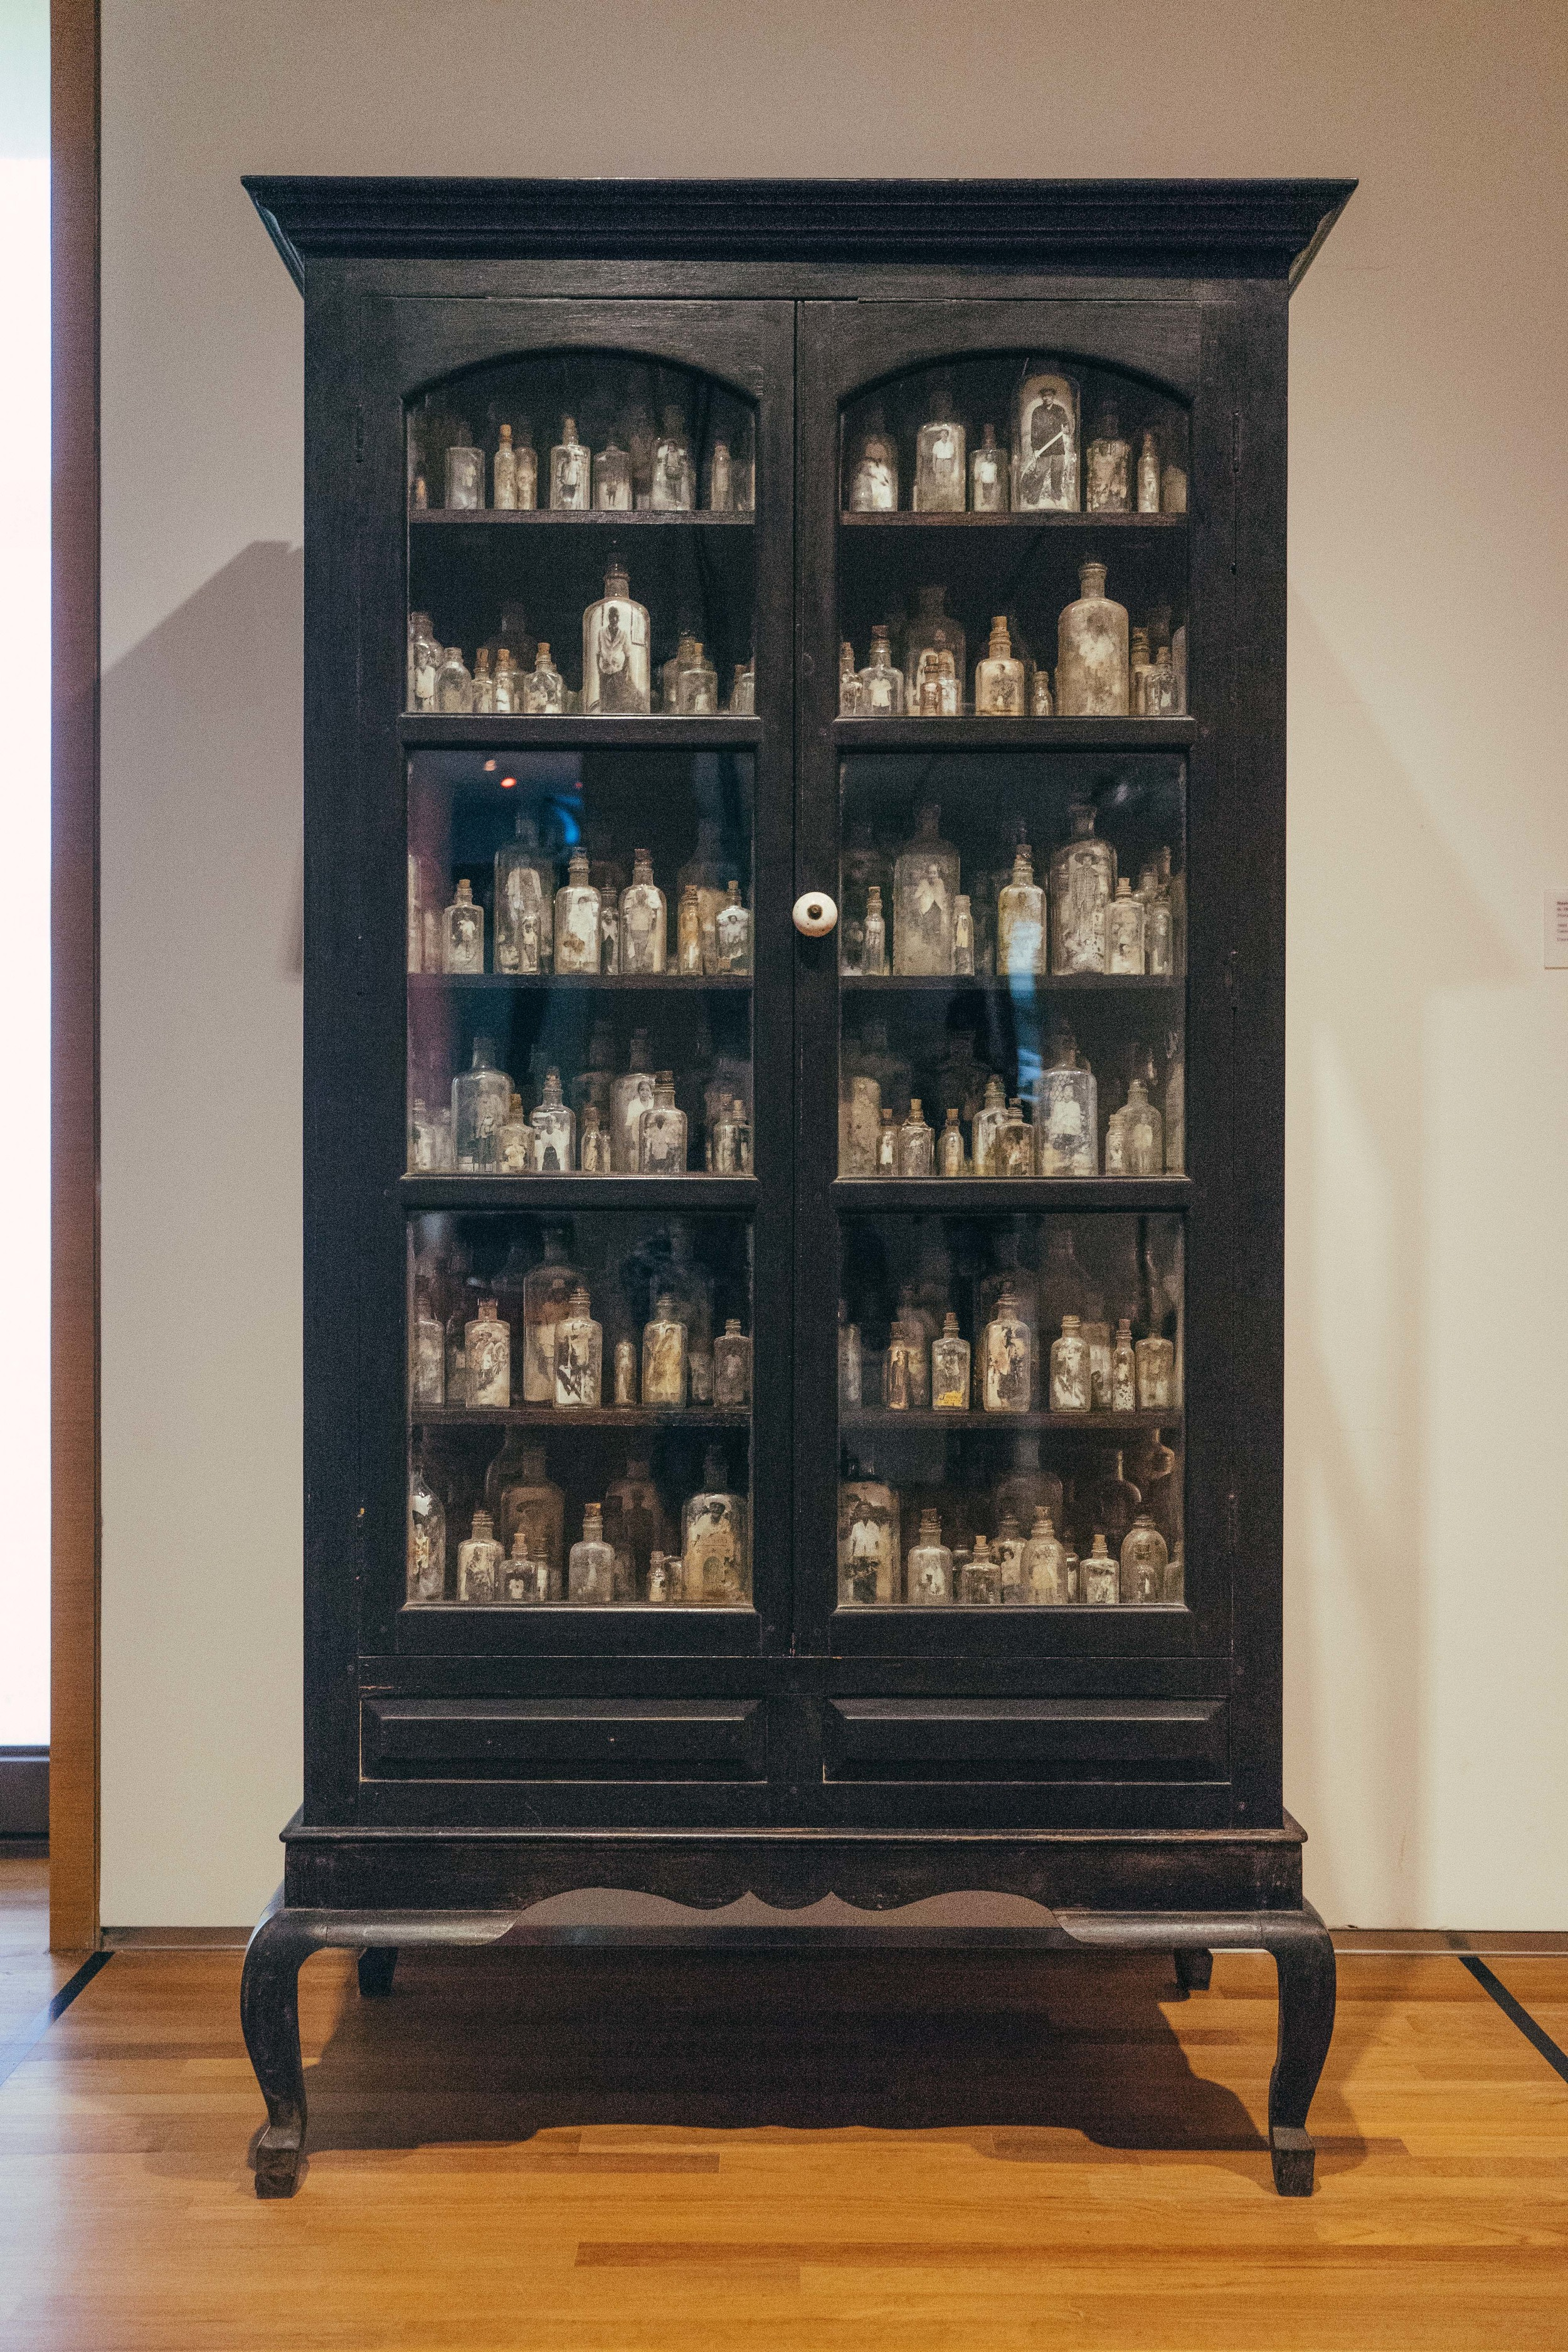 Each story crammed into a bottle. Multiple generations crammed into an armoire.